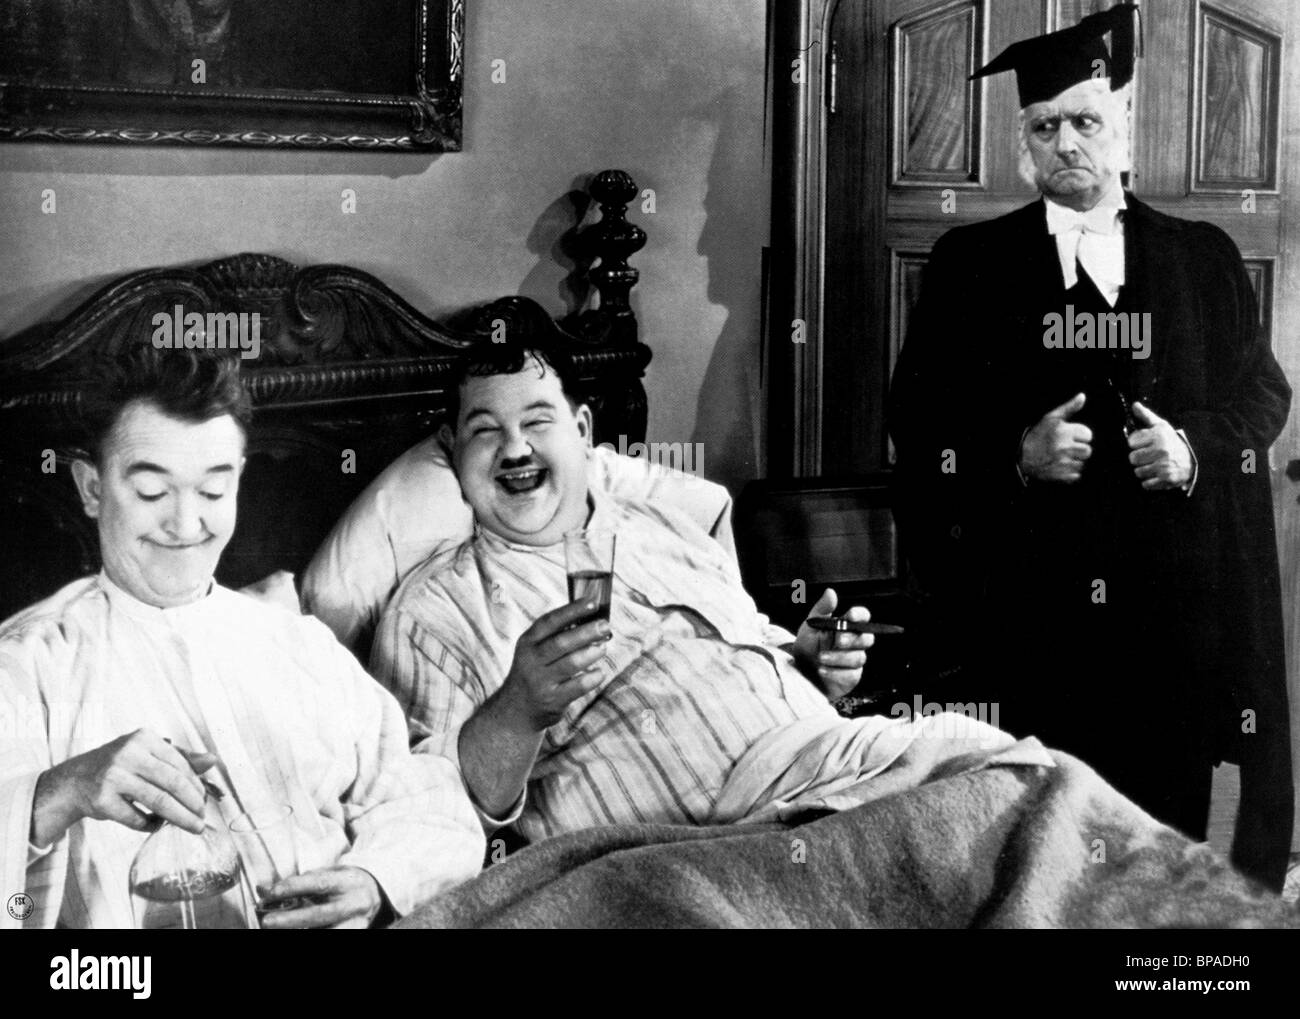 Laurel And Hardy Bed Stock Photos & Laurel And Hardy Bed Stock ...